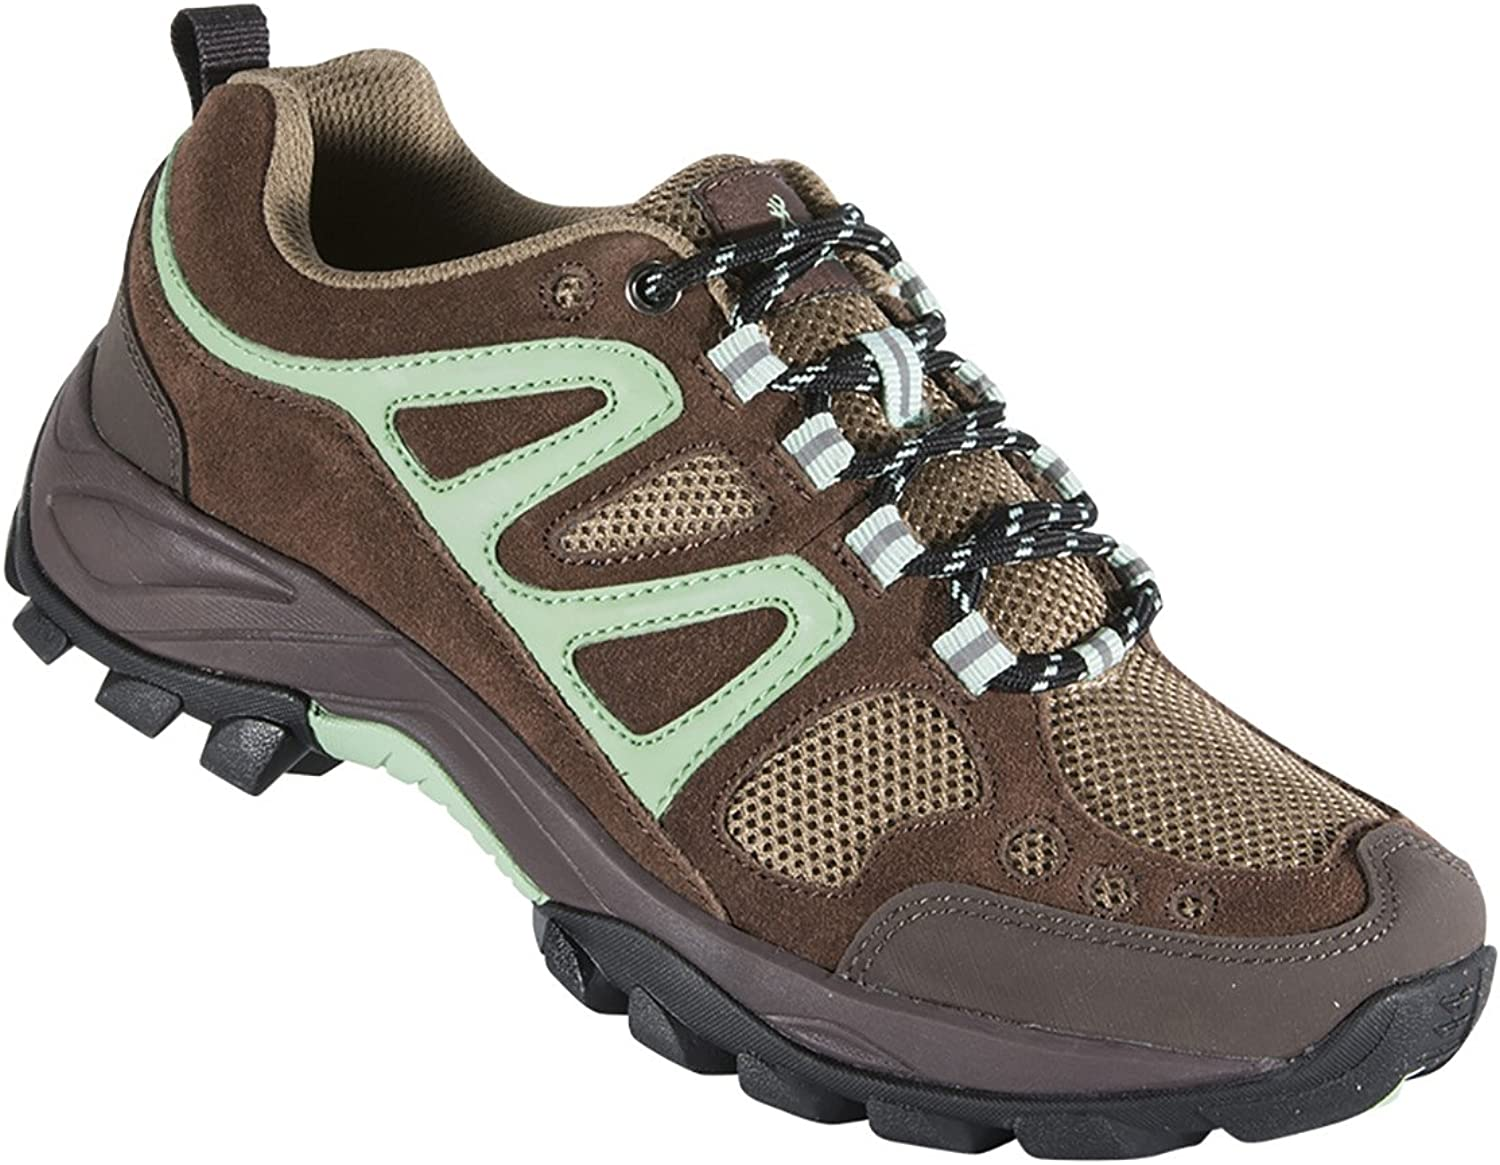 Browning Women's Delano Trail shoes